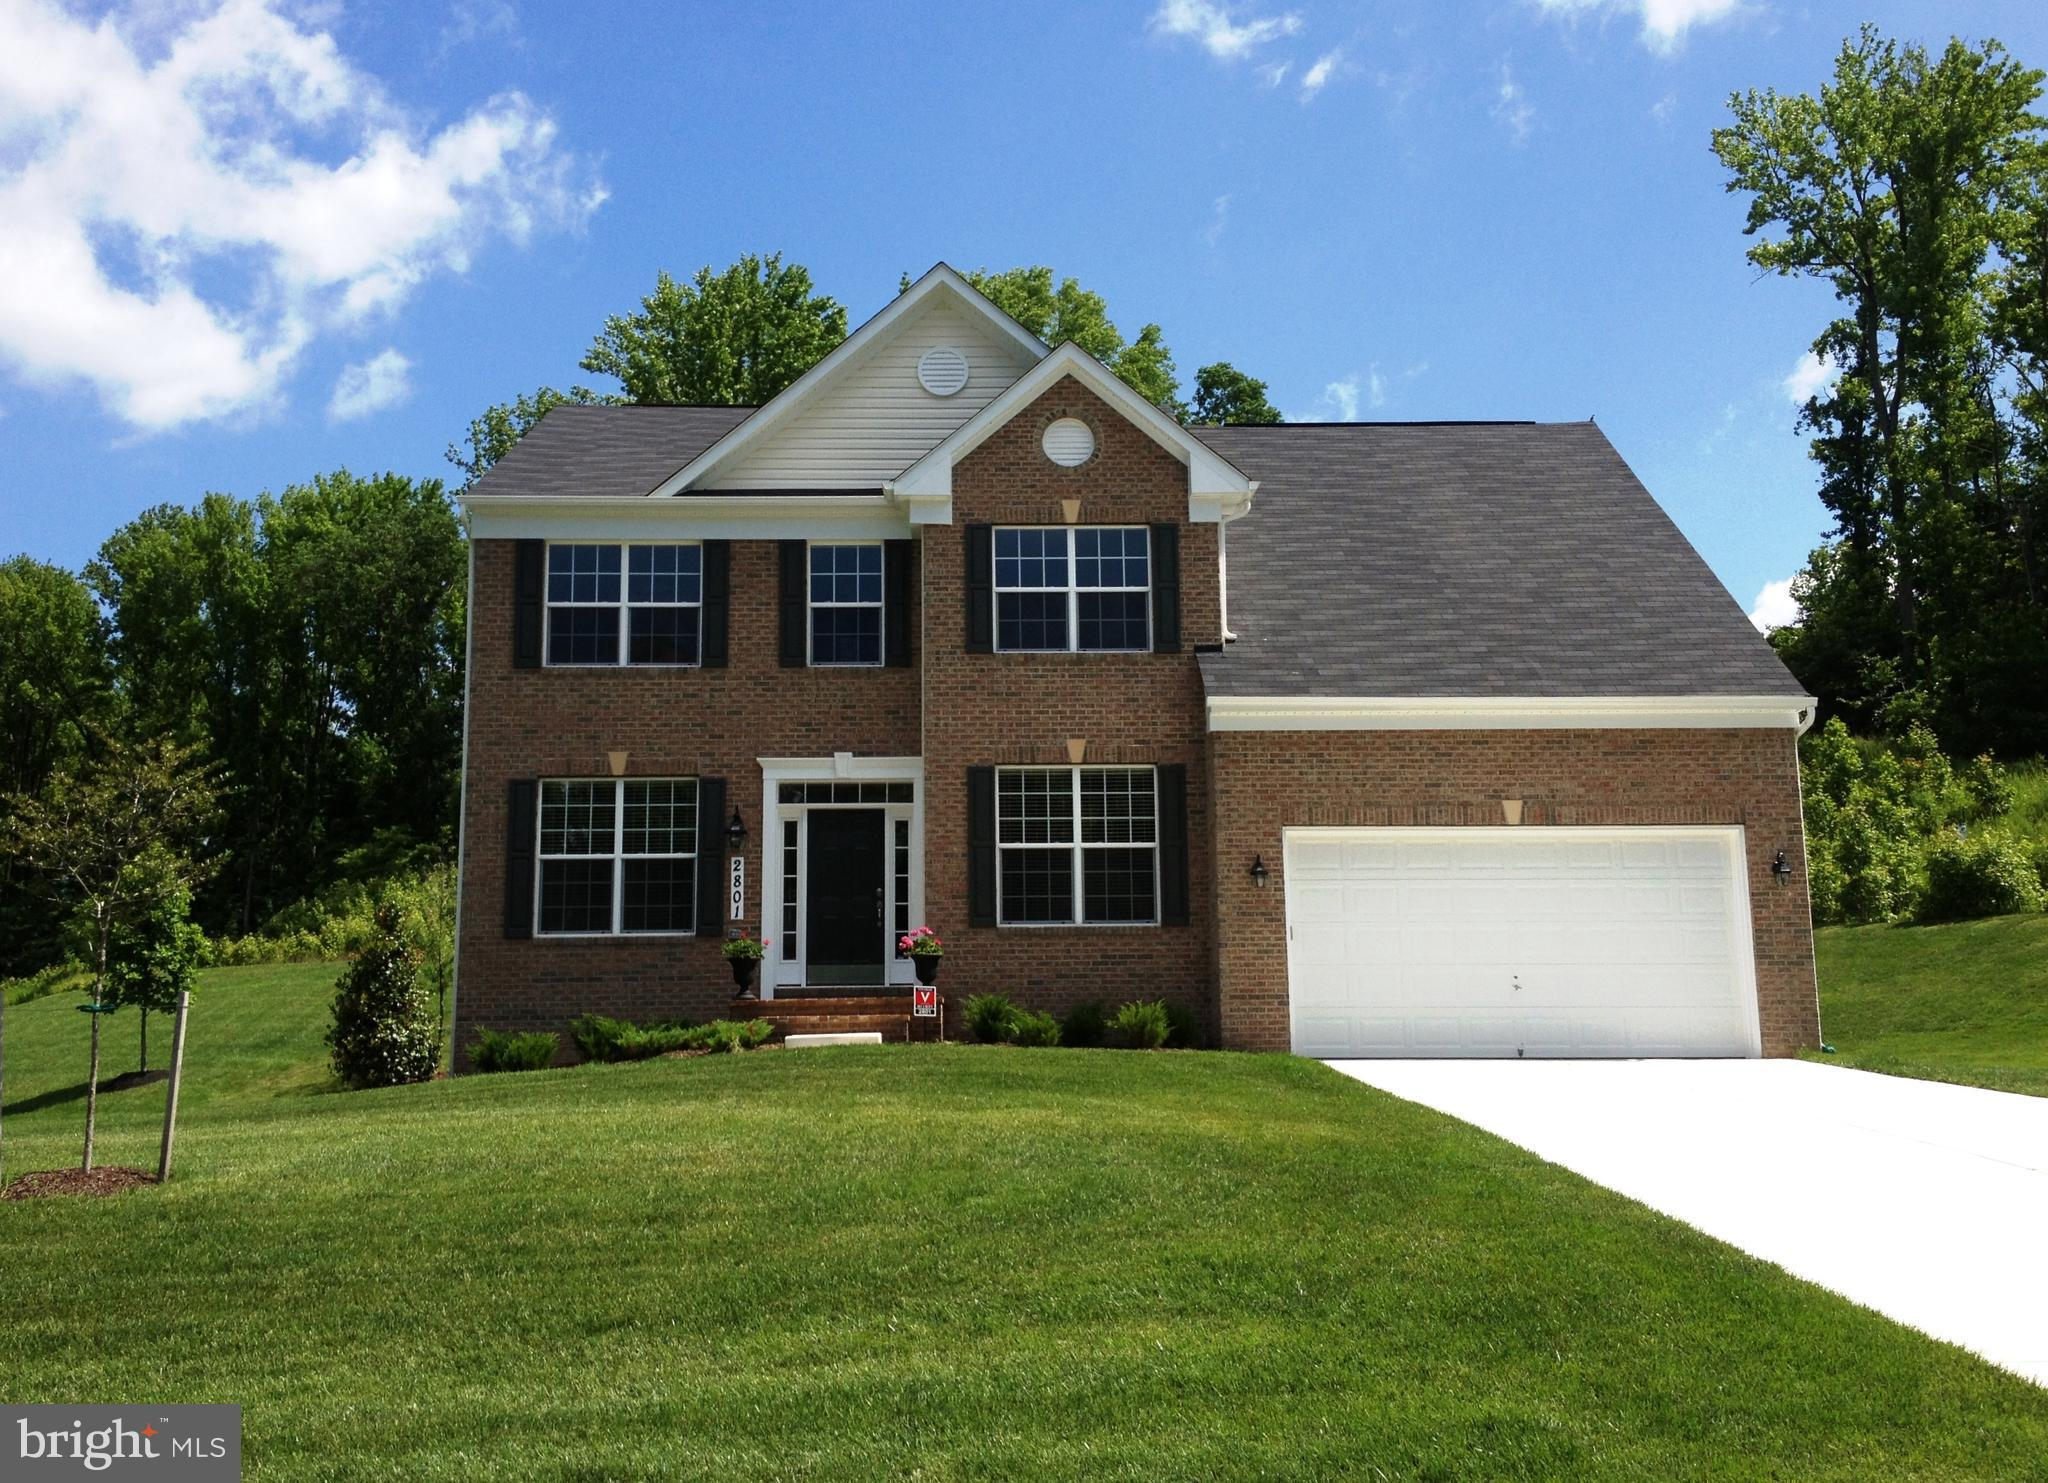 1907 DALE LANE, ACCOKEEK, MD 20607